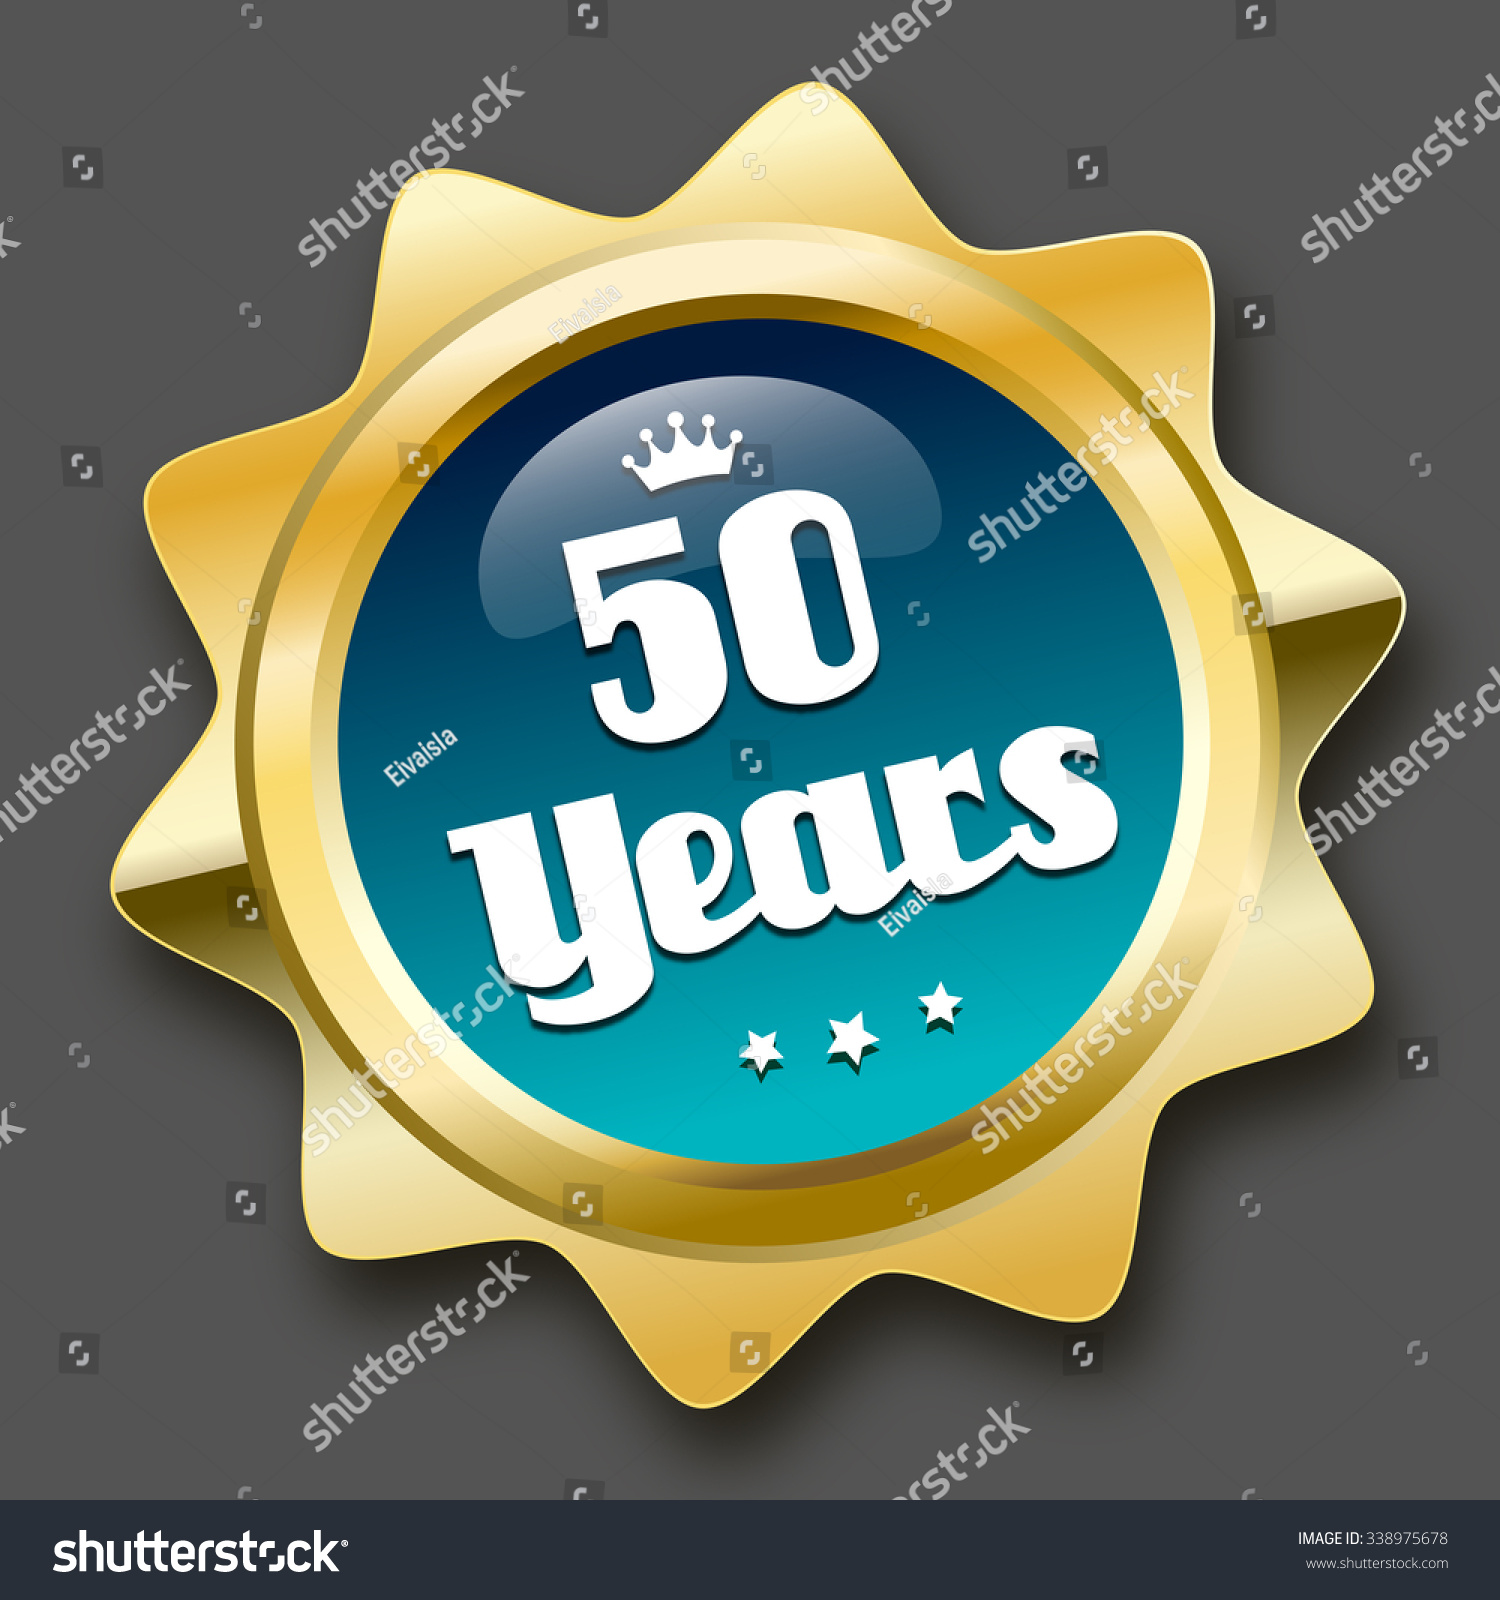 50 years seal icon crown symbol stock vector 338975678 shutterstock 50 years seal or icon with crown symbol glossy golden seal or button with stars buycottarizona Choice Image